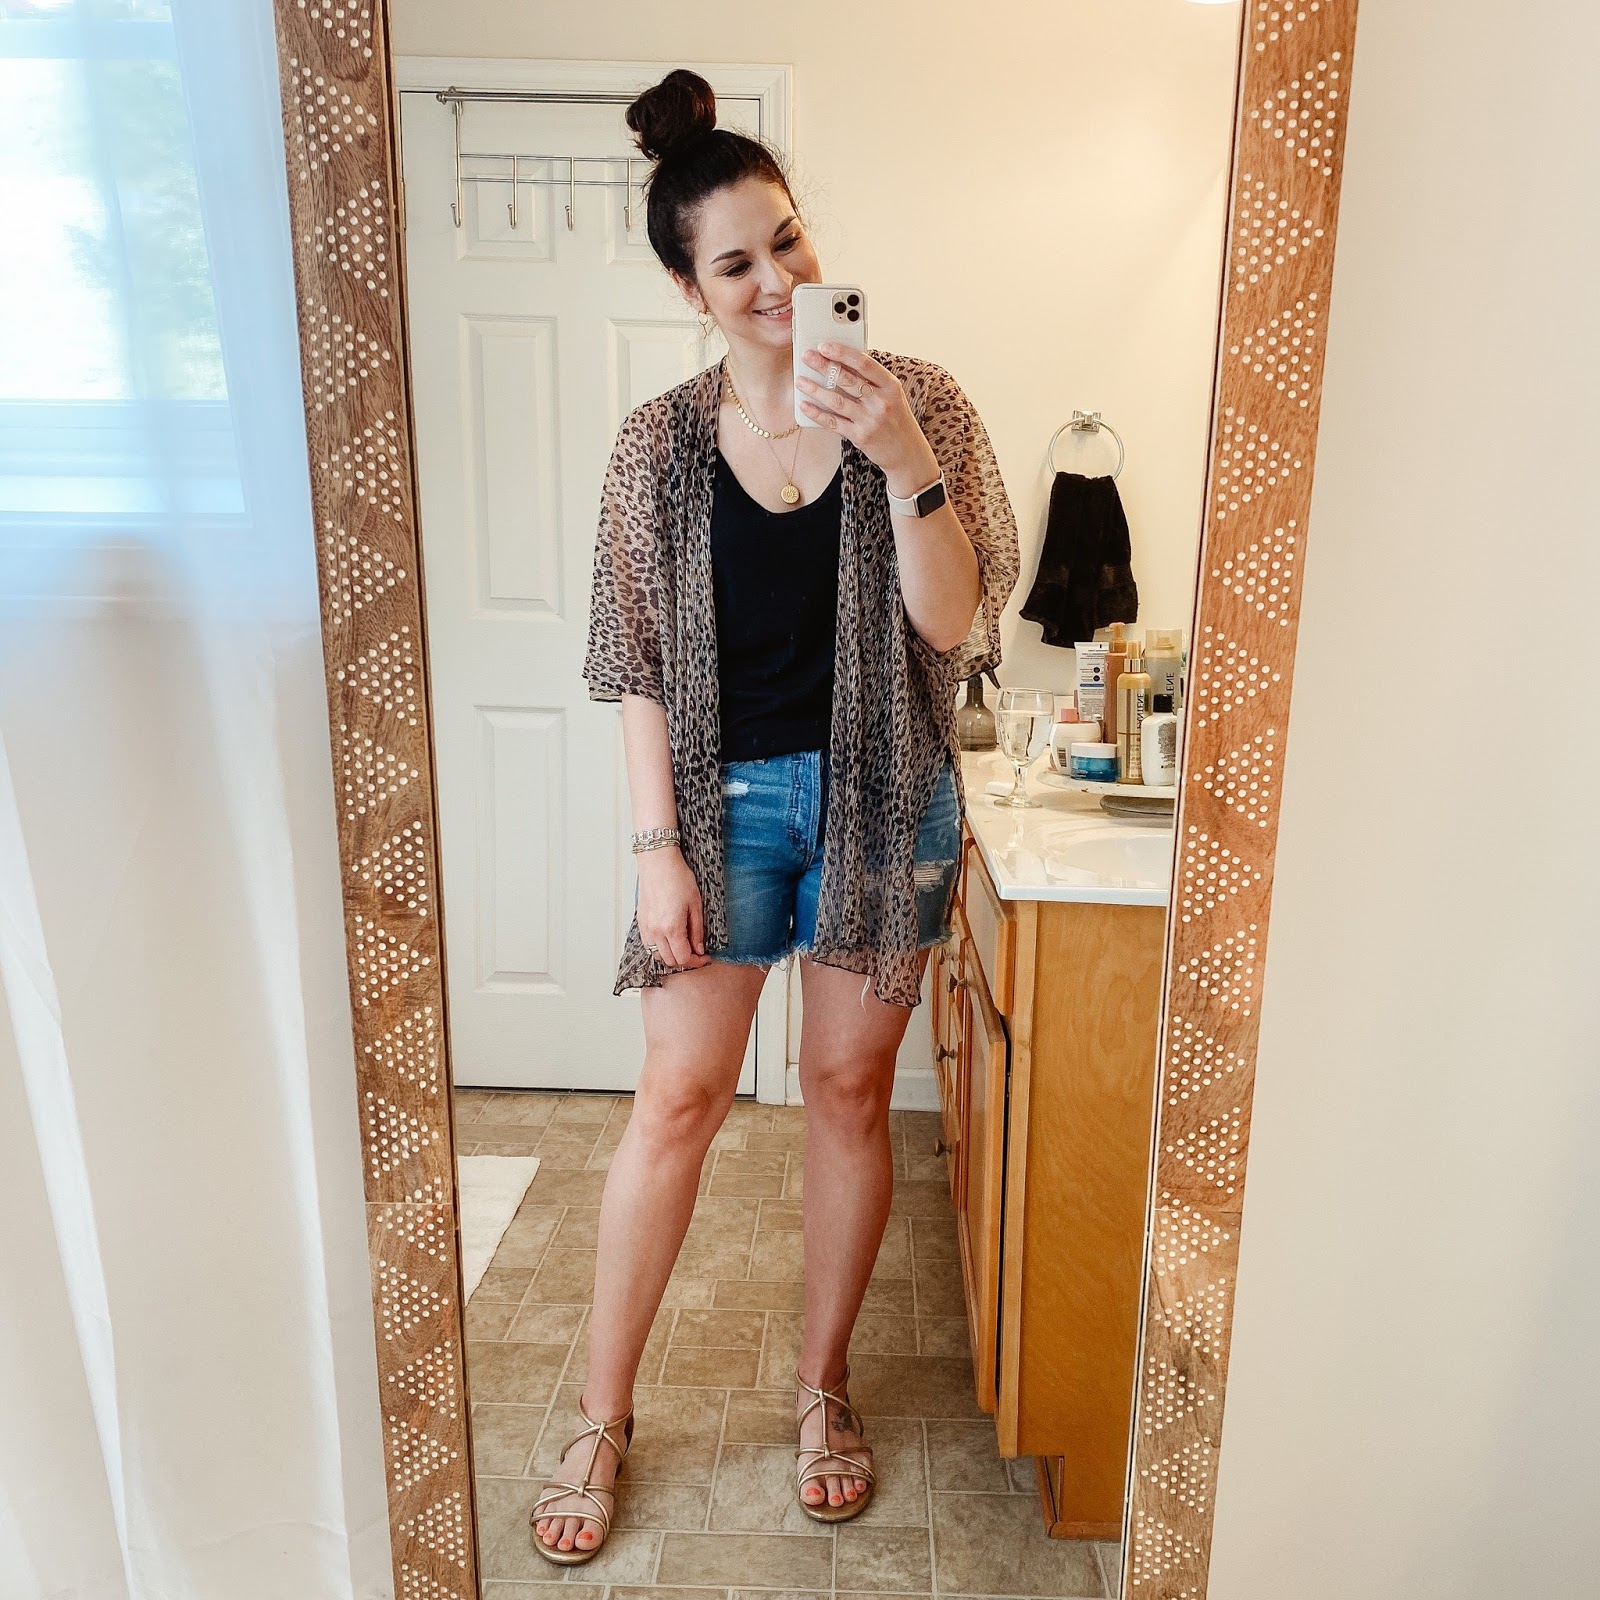 instagram roundup, style on a budget, nc blogger, north carolina blogger, spring outfits, what to wear for spring